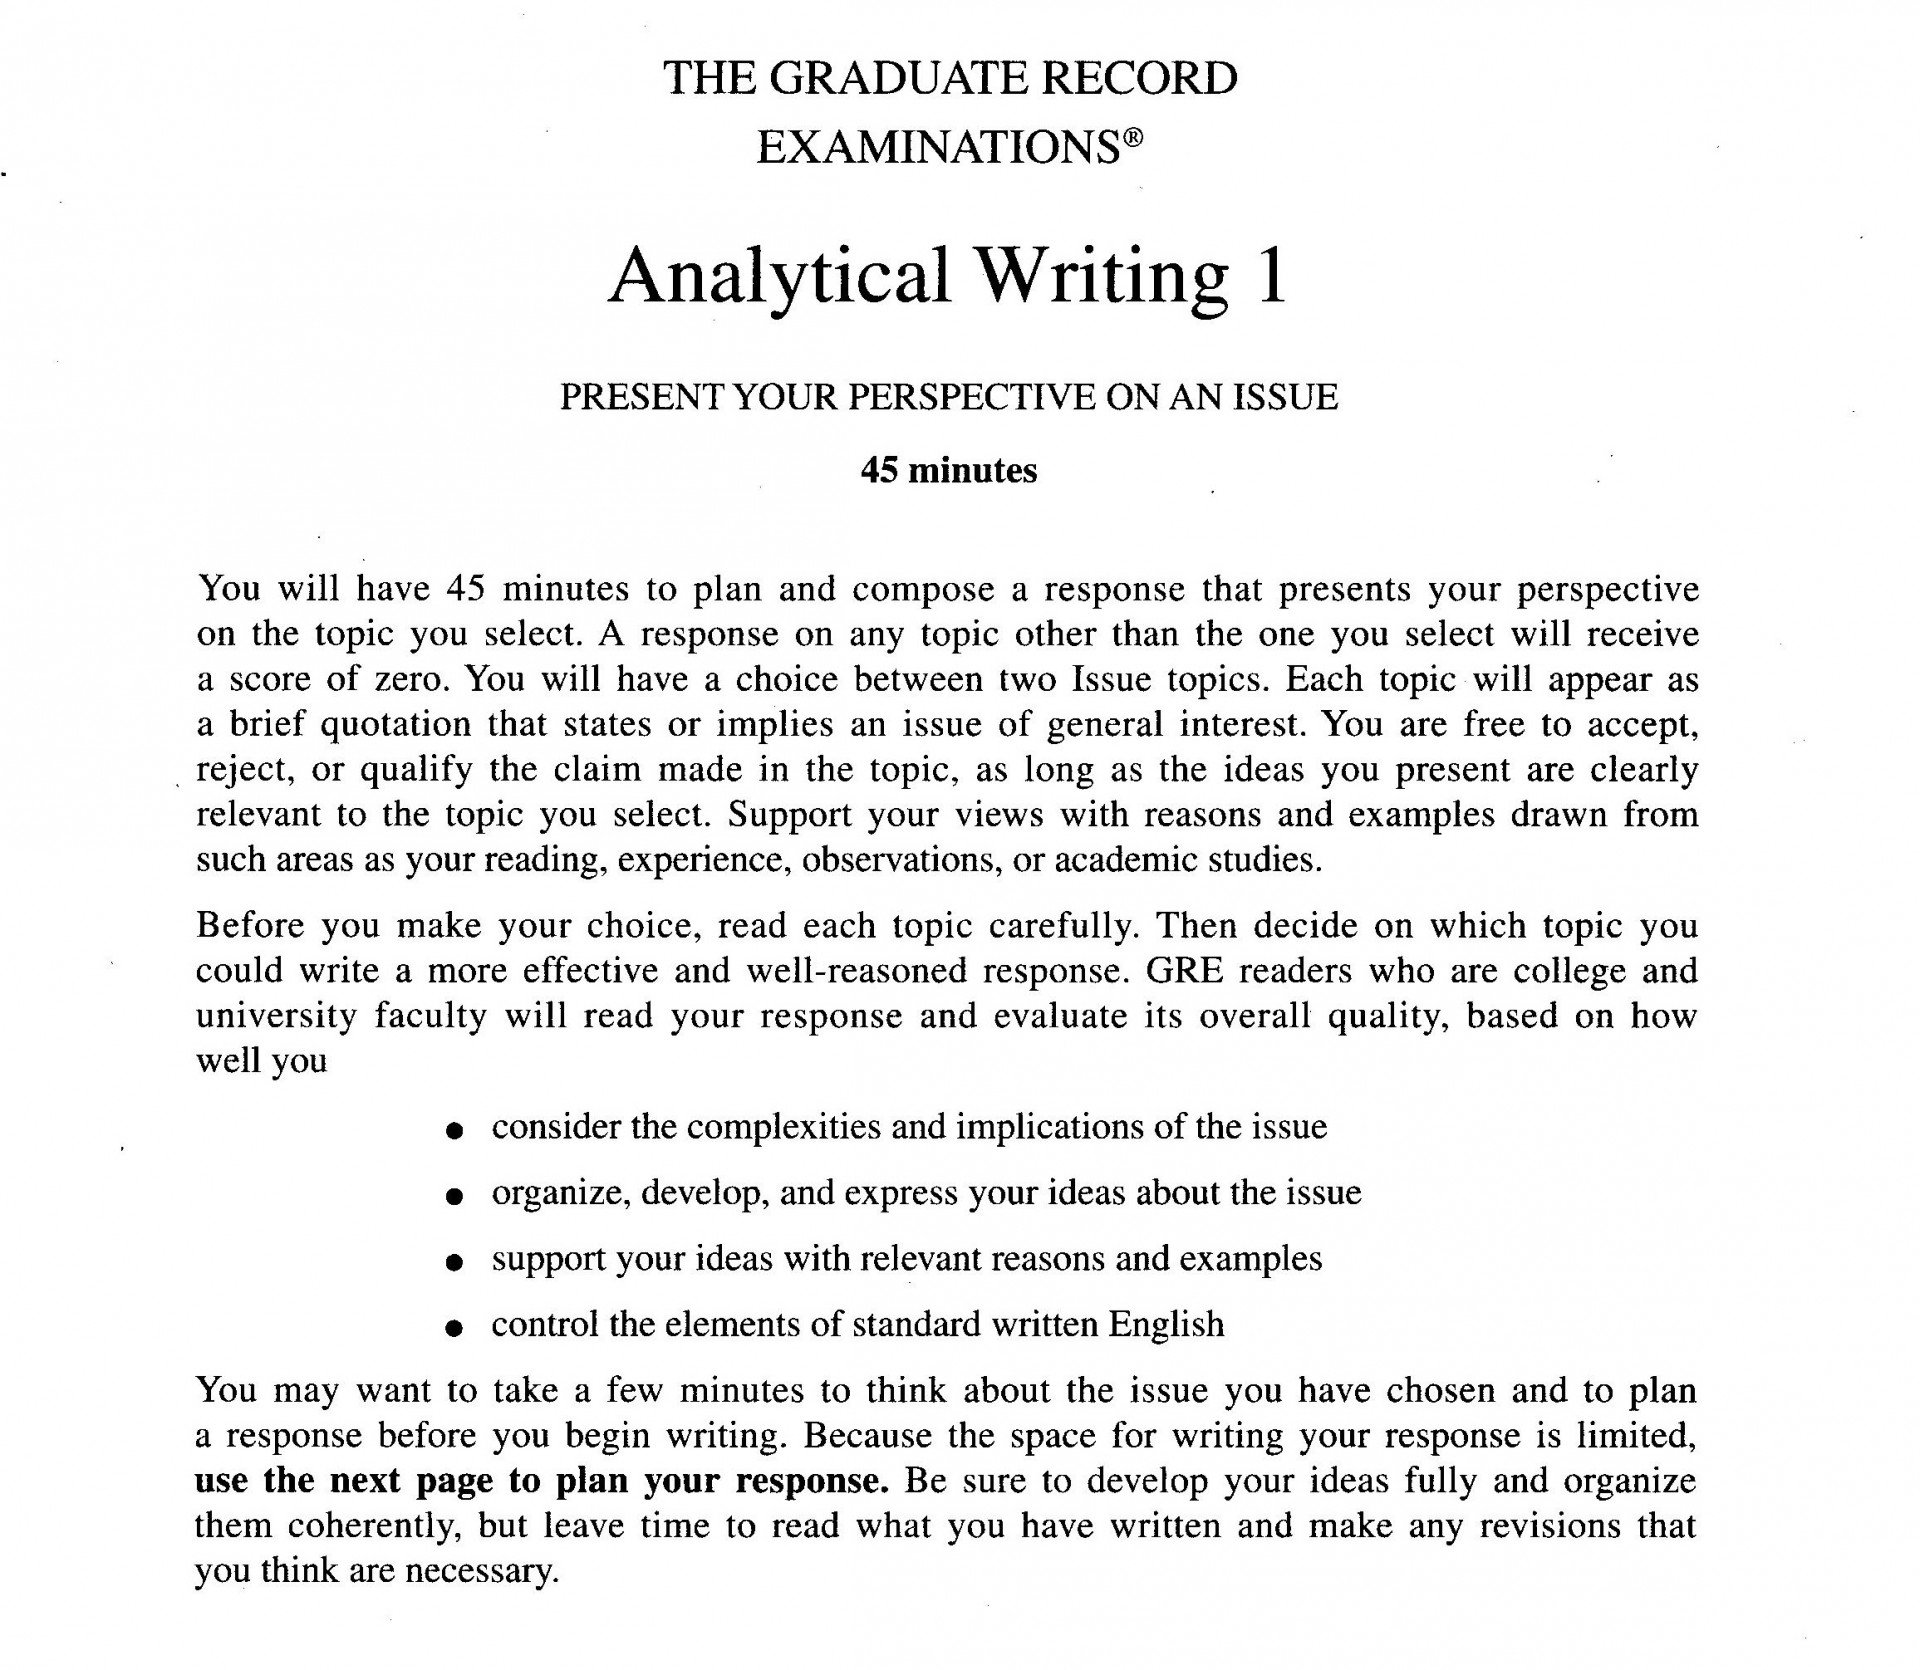 003 Gre Issue Essay Examples Example Stirring Chart To Use Analytical Writing Argument Samples 1920